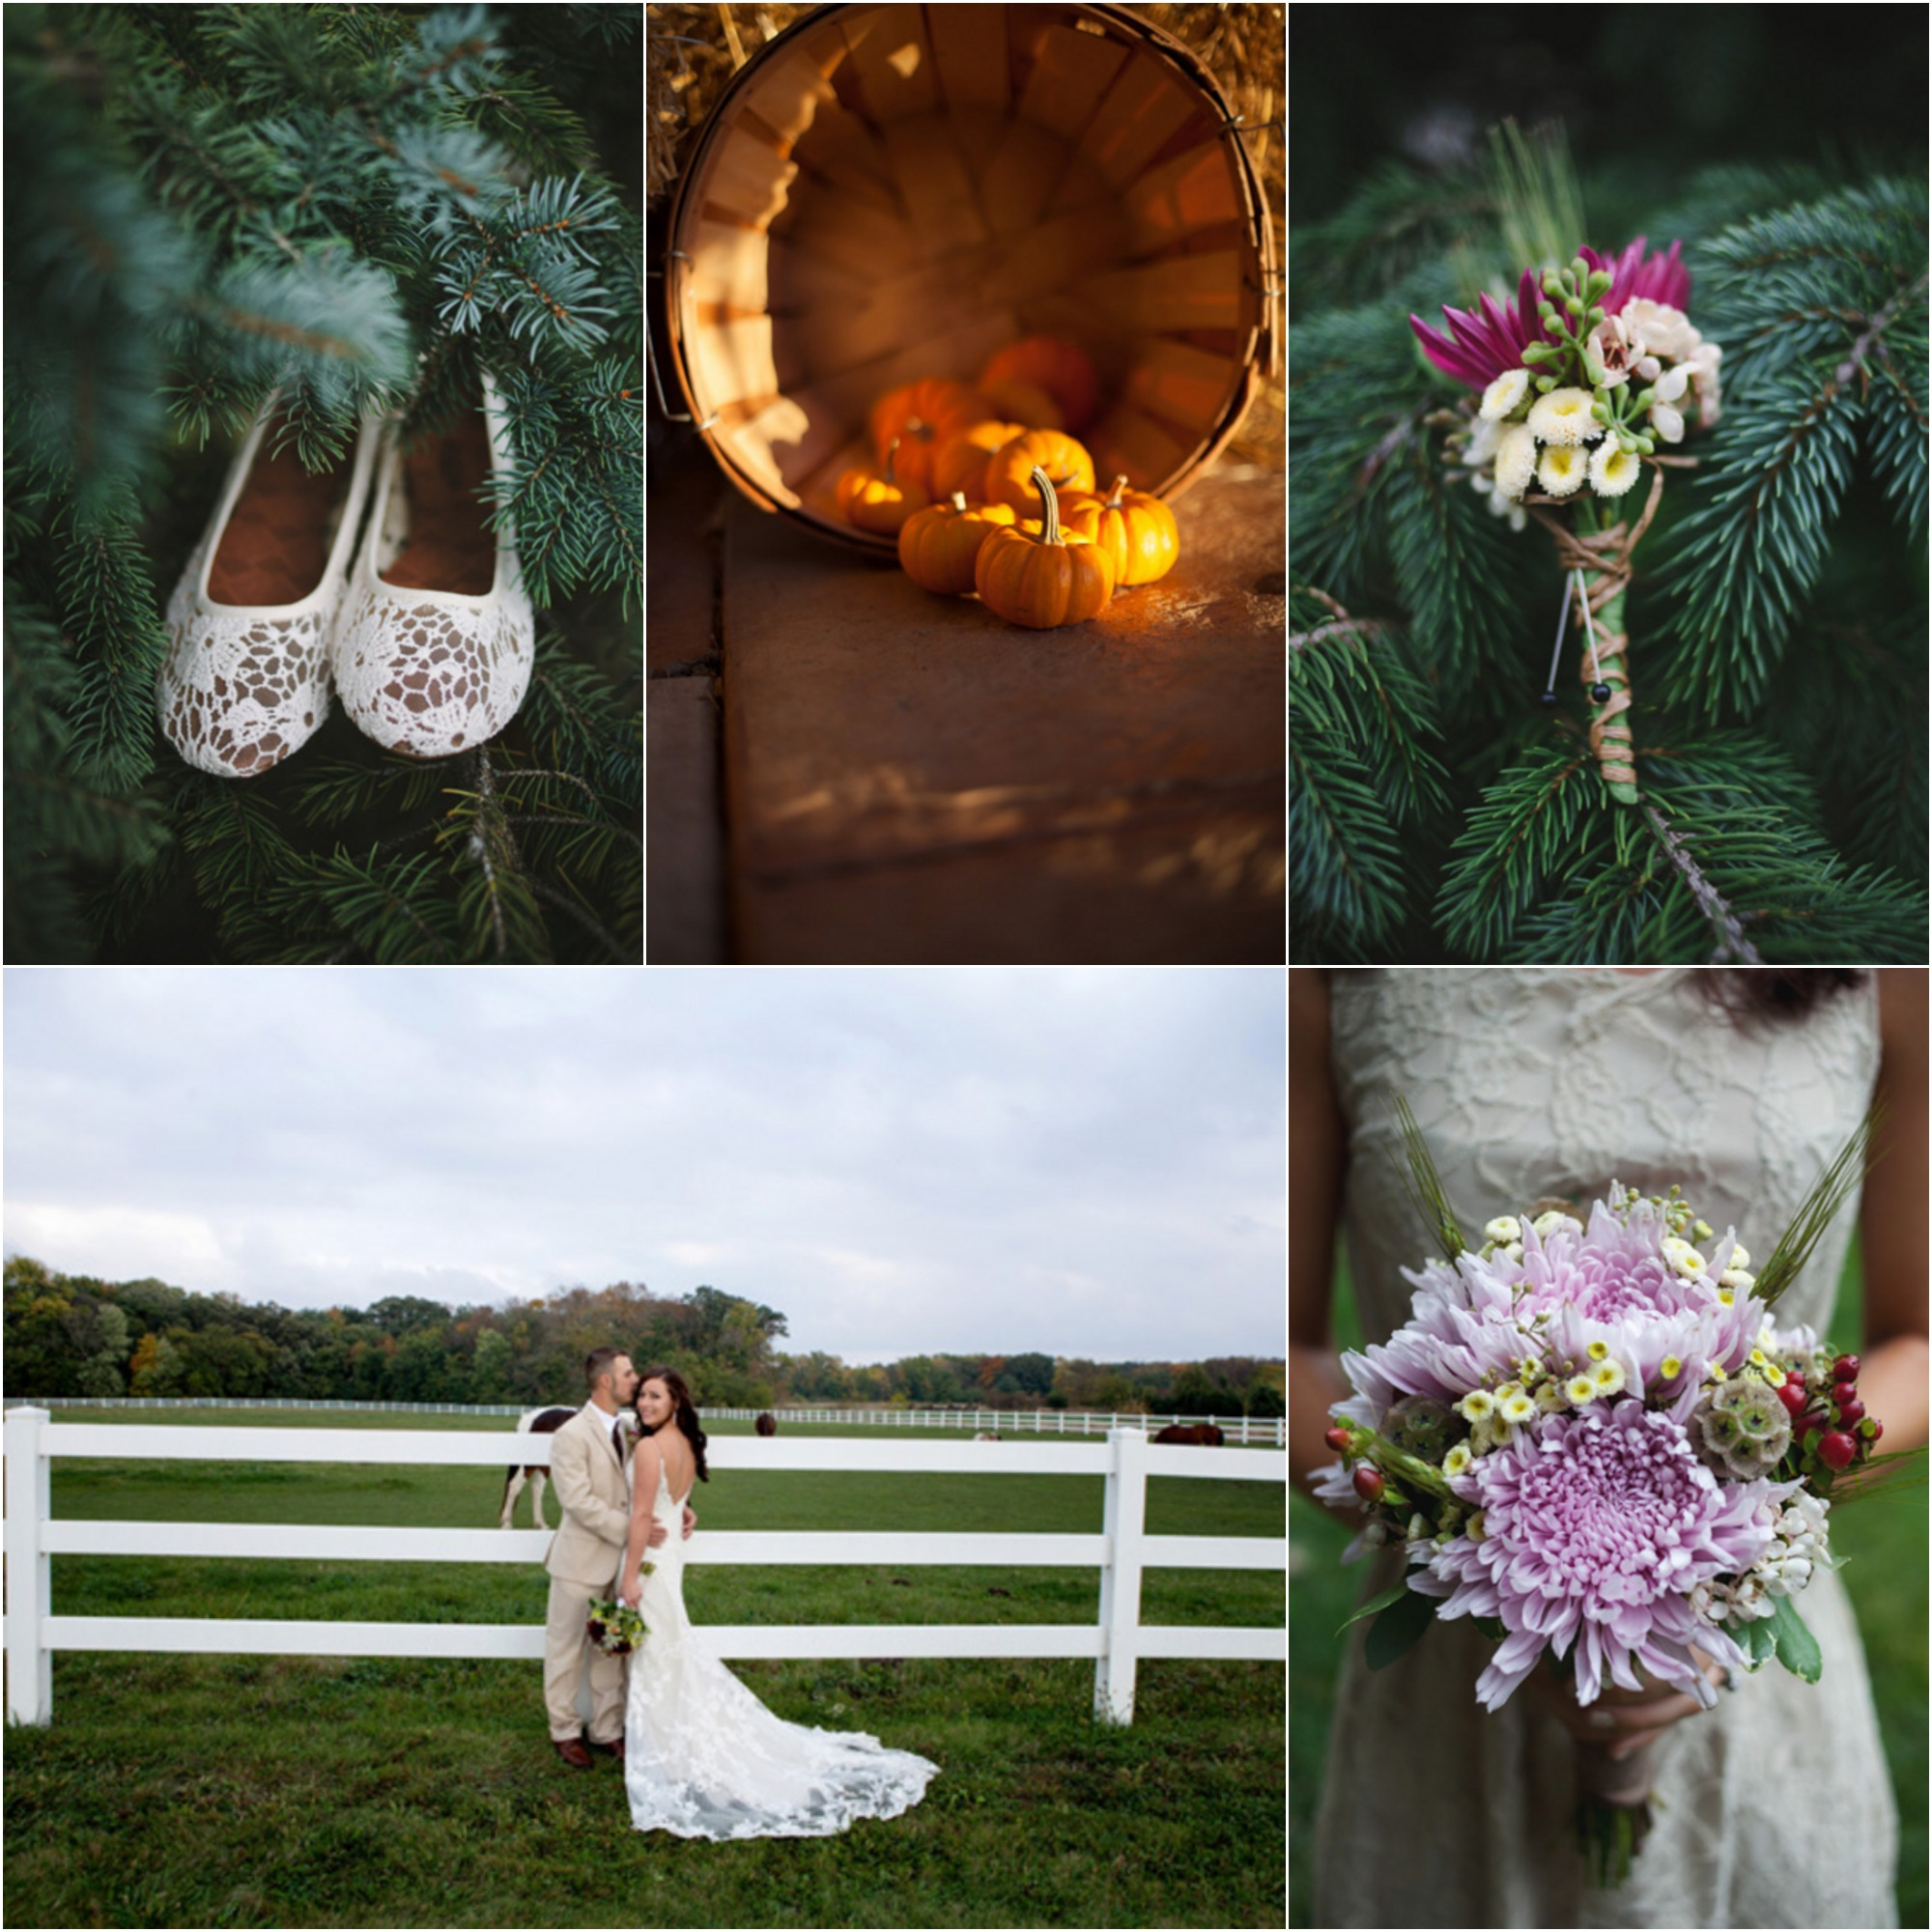 Autumn Country Farm Wedding  Rustic Wedding Chic